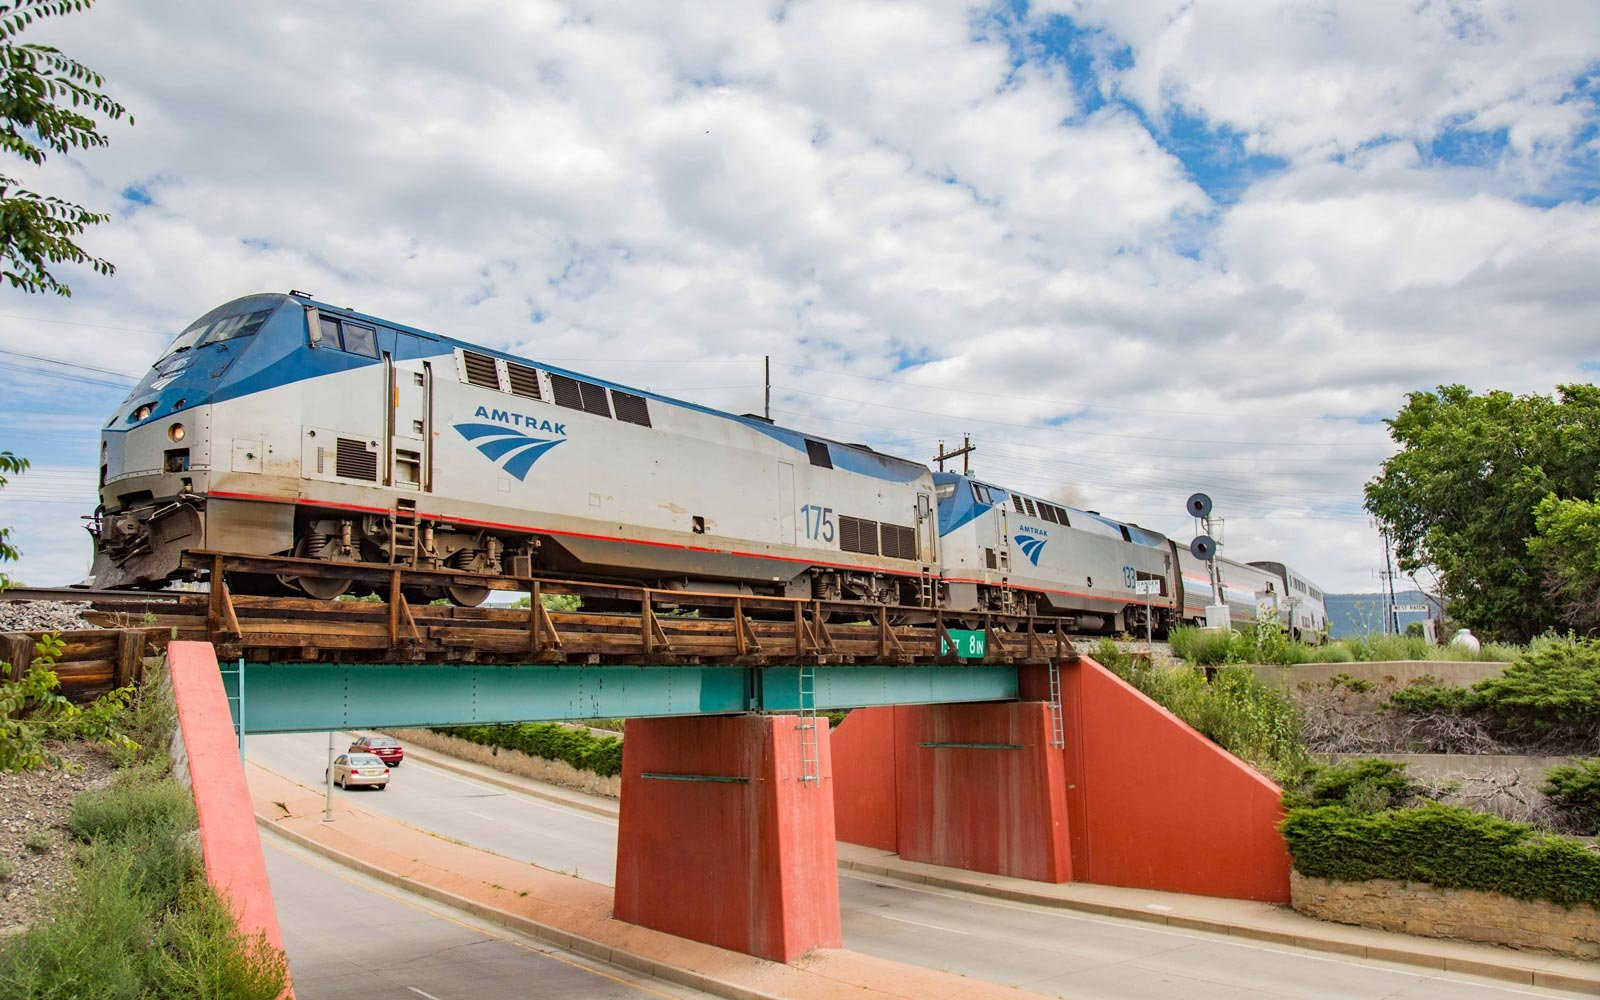 Amtrak Is Having a 2-for-1 Sale on Rooms and Roomettes